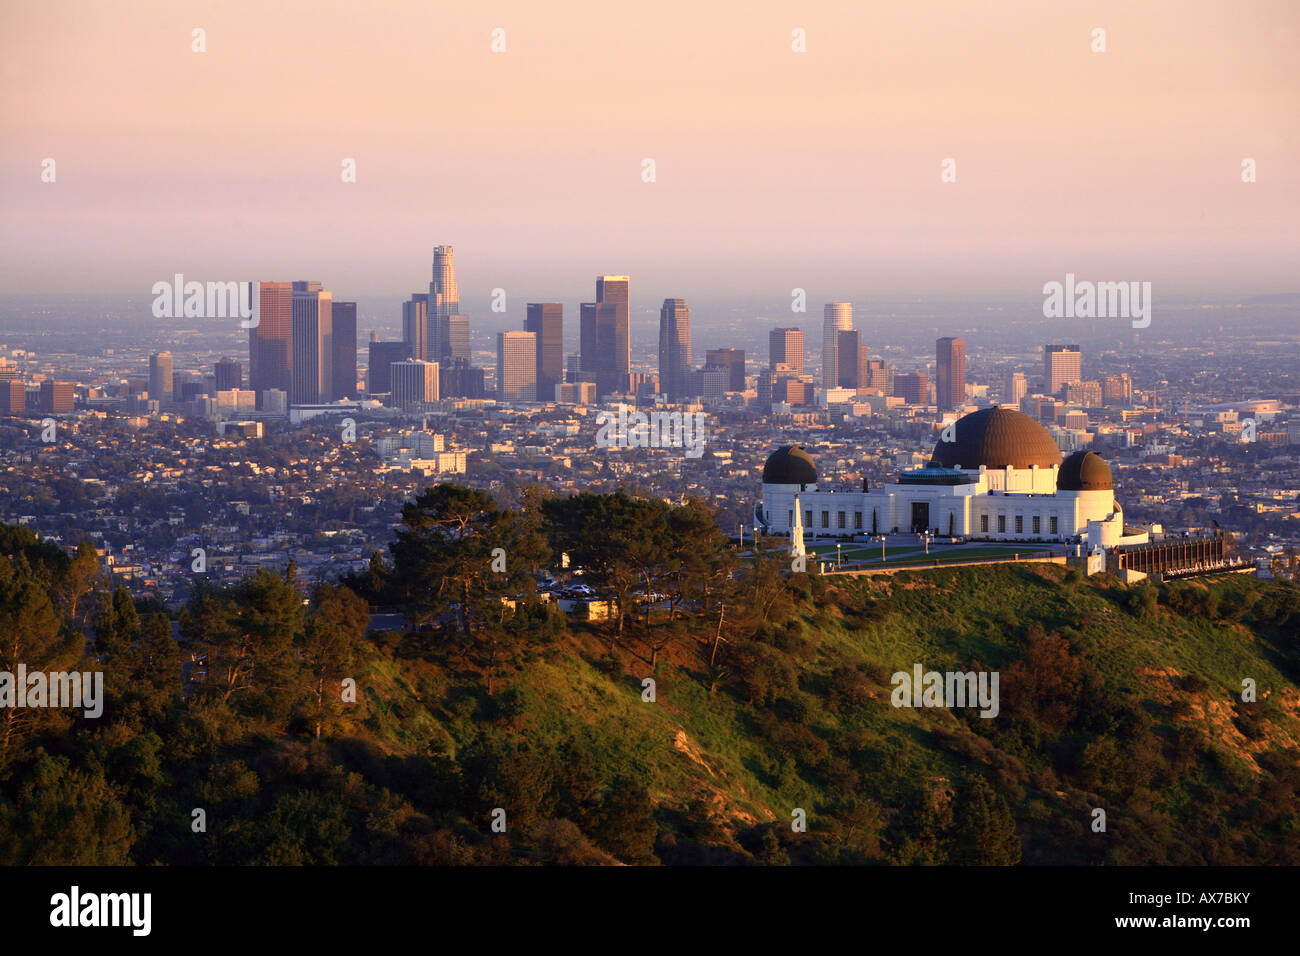 Griffith Observatory And The Los Angeles Skyline At Sunset Stock Photo 16753310 Alamy